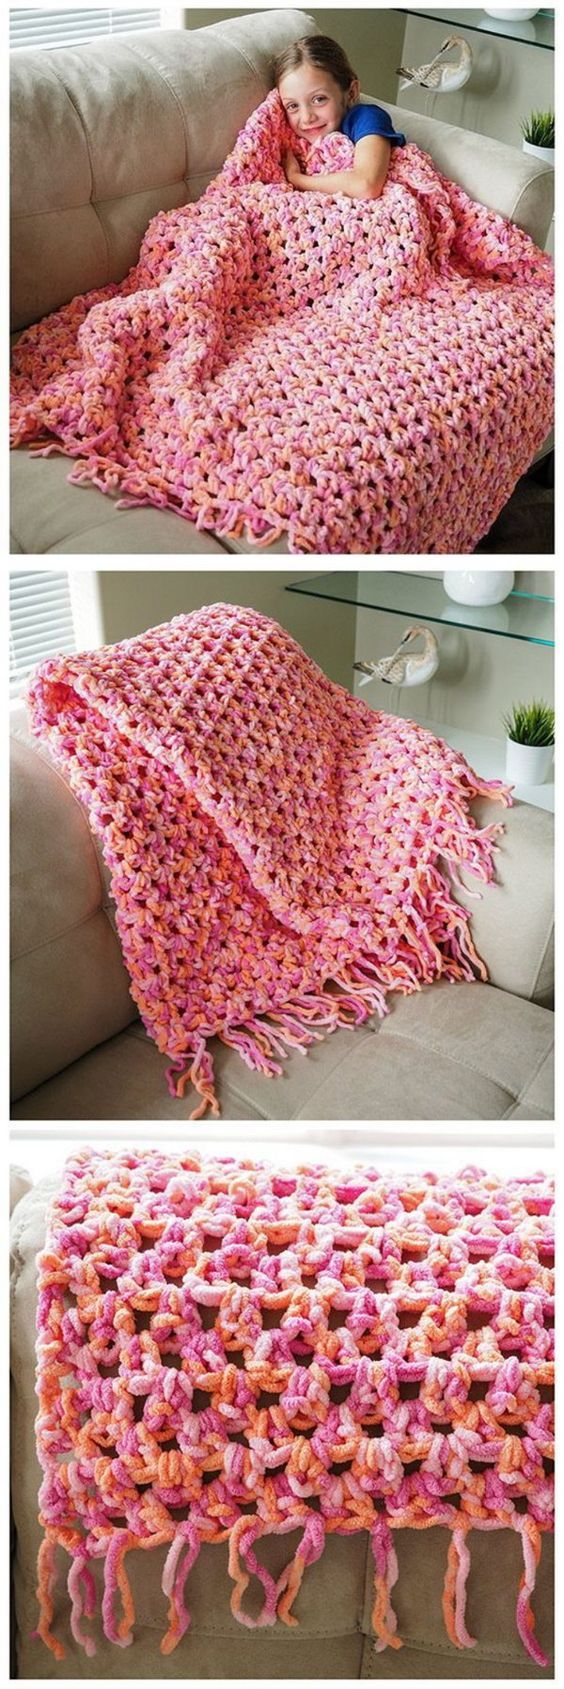 25+ best ideas about Beginner crochet on Pinterest ...